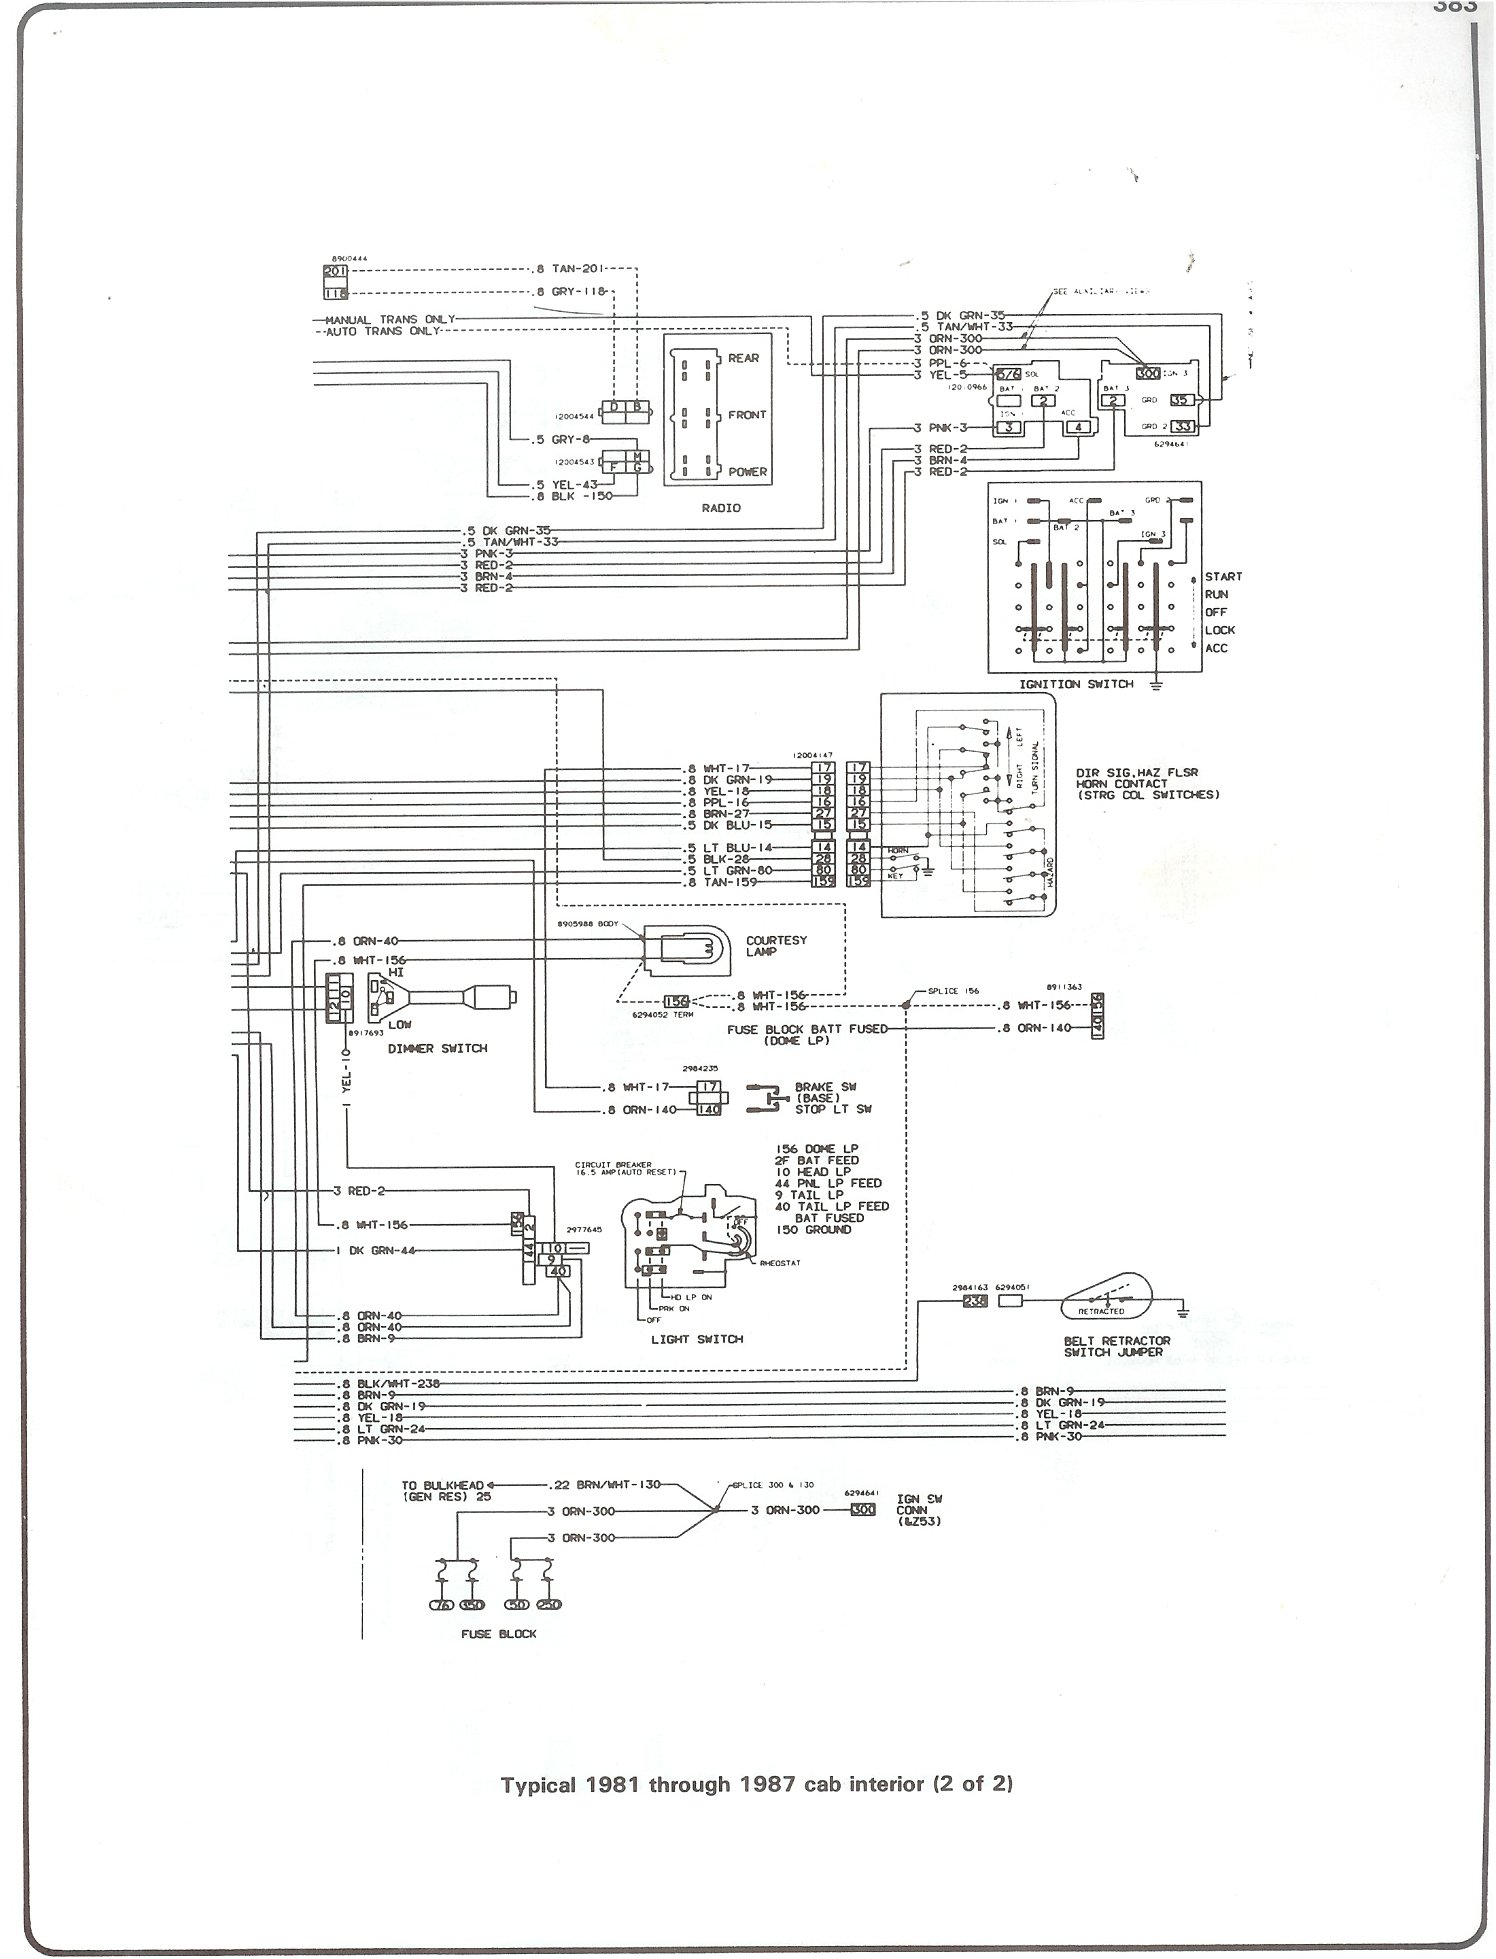 1973 Chevy C10 Wiring Diagram 1970 Nova C Diagrams Site 73 87 K20 Diagramcomplete Diagrams81 Cab